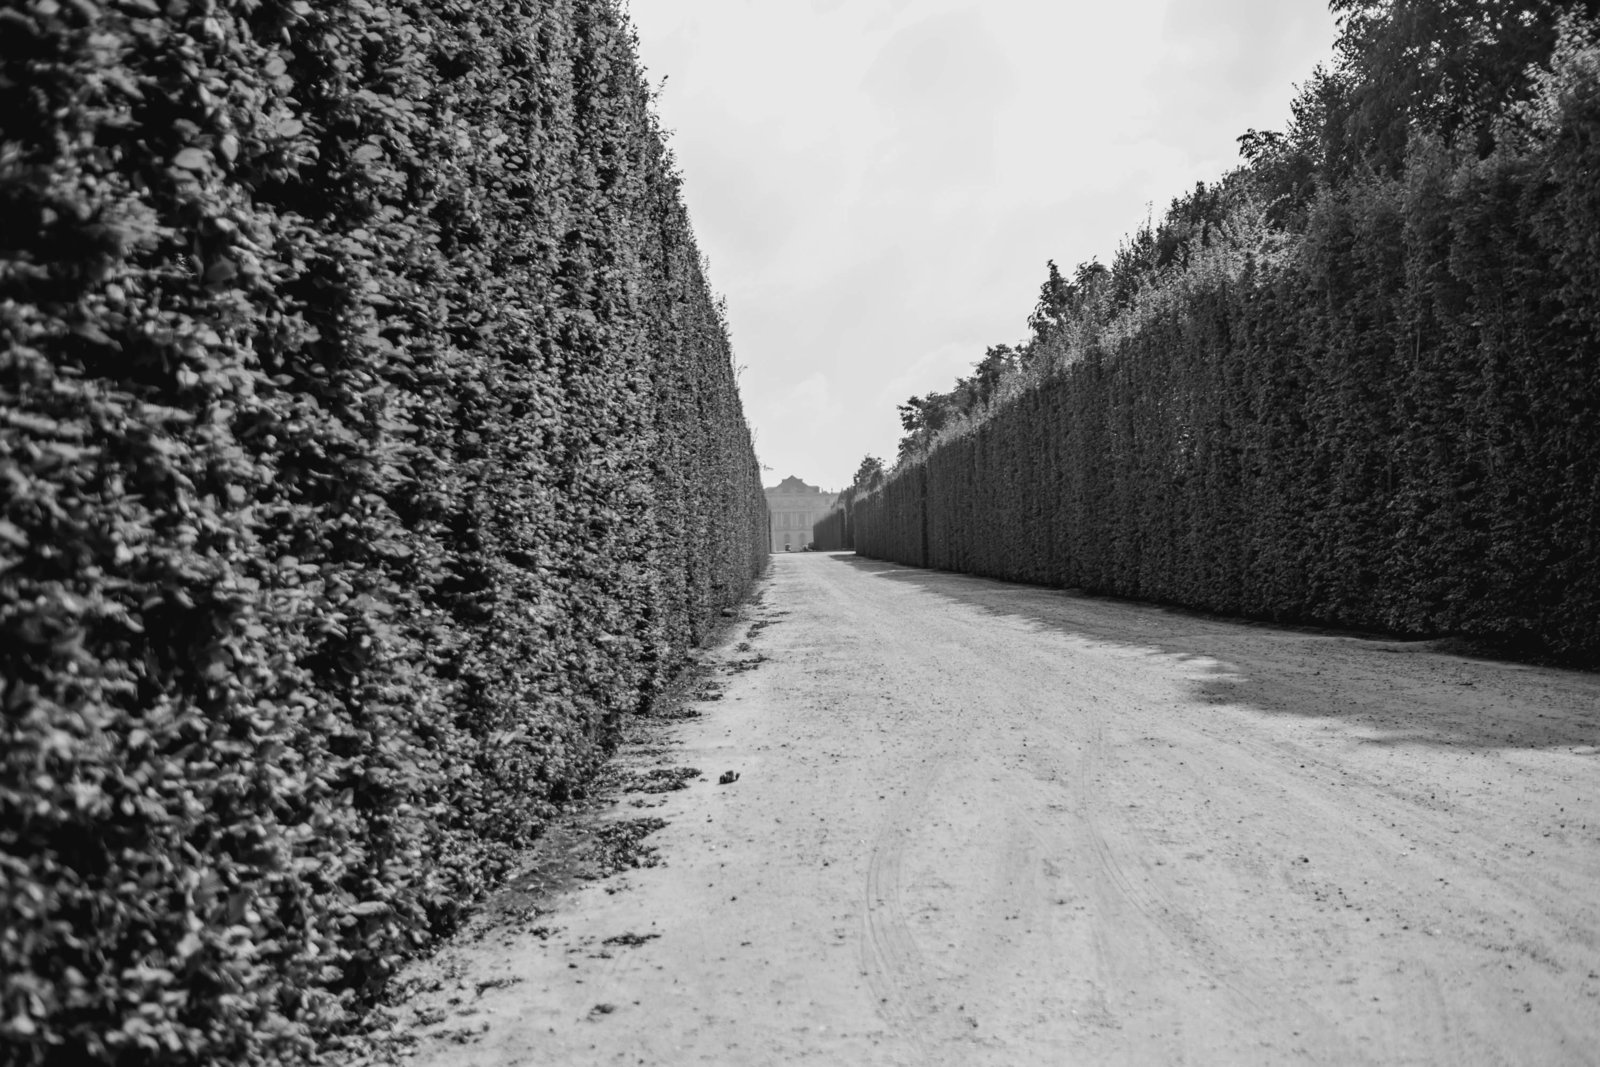 hedge-path-palace-versailles-france-travel-destination-kate-timbers-photography-1664